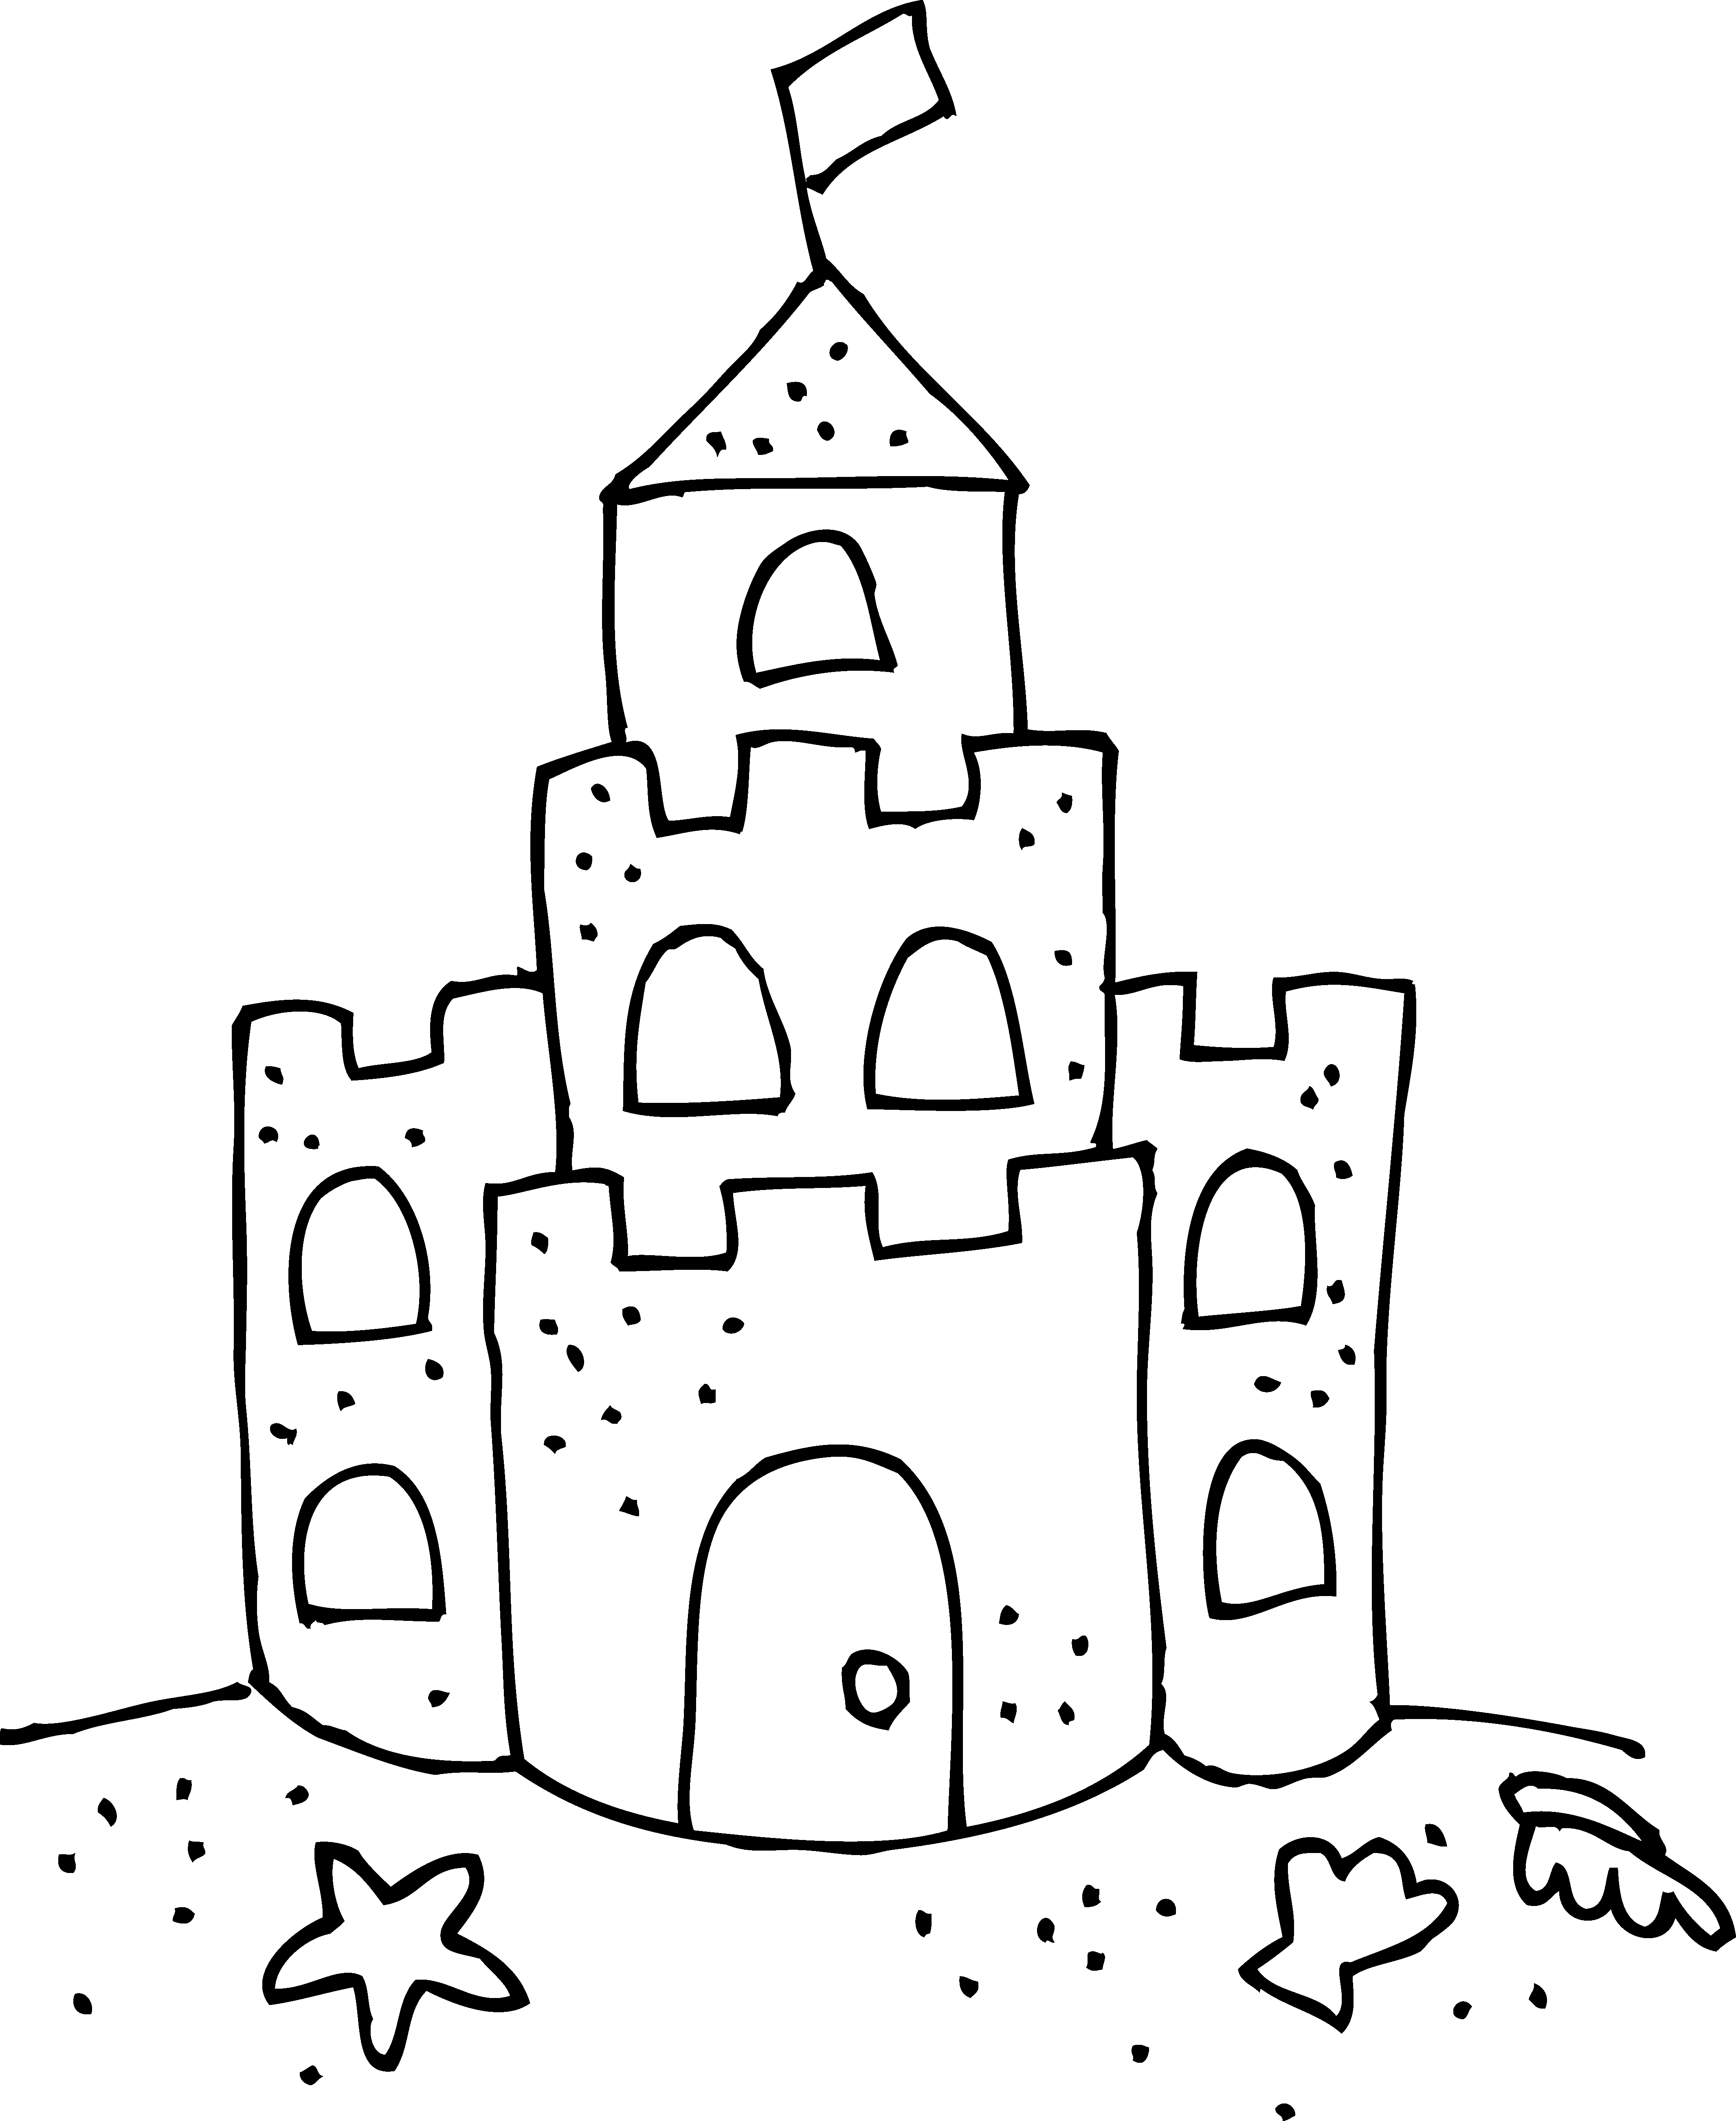 coloring beach clipart black and white beach pail and shovel coloring book page clipart best and beach black white clipart coloring